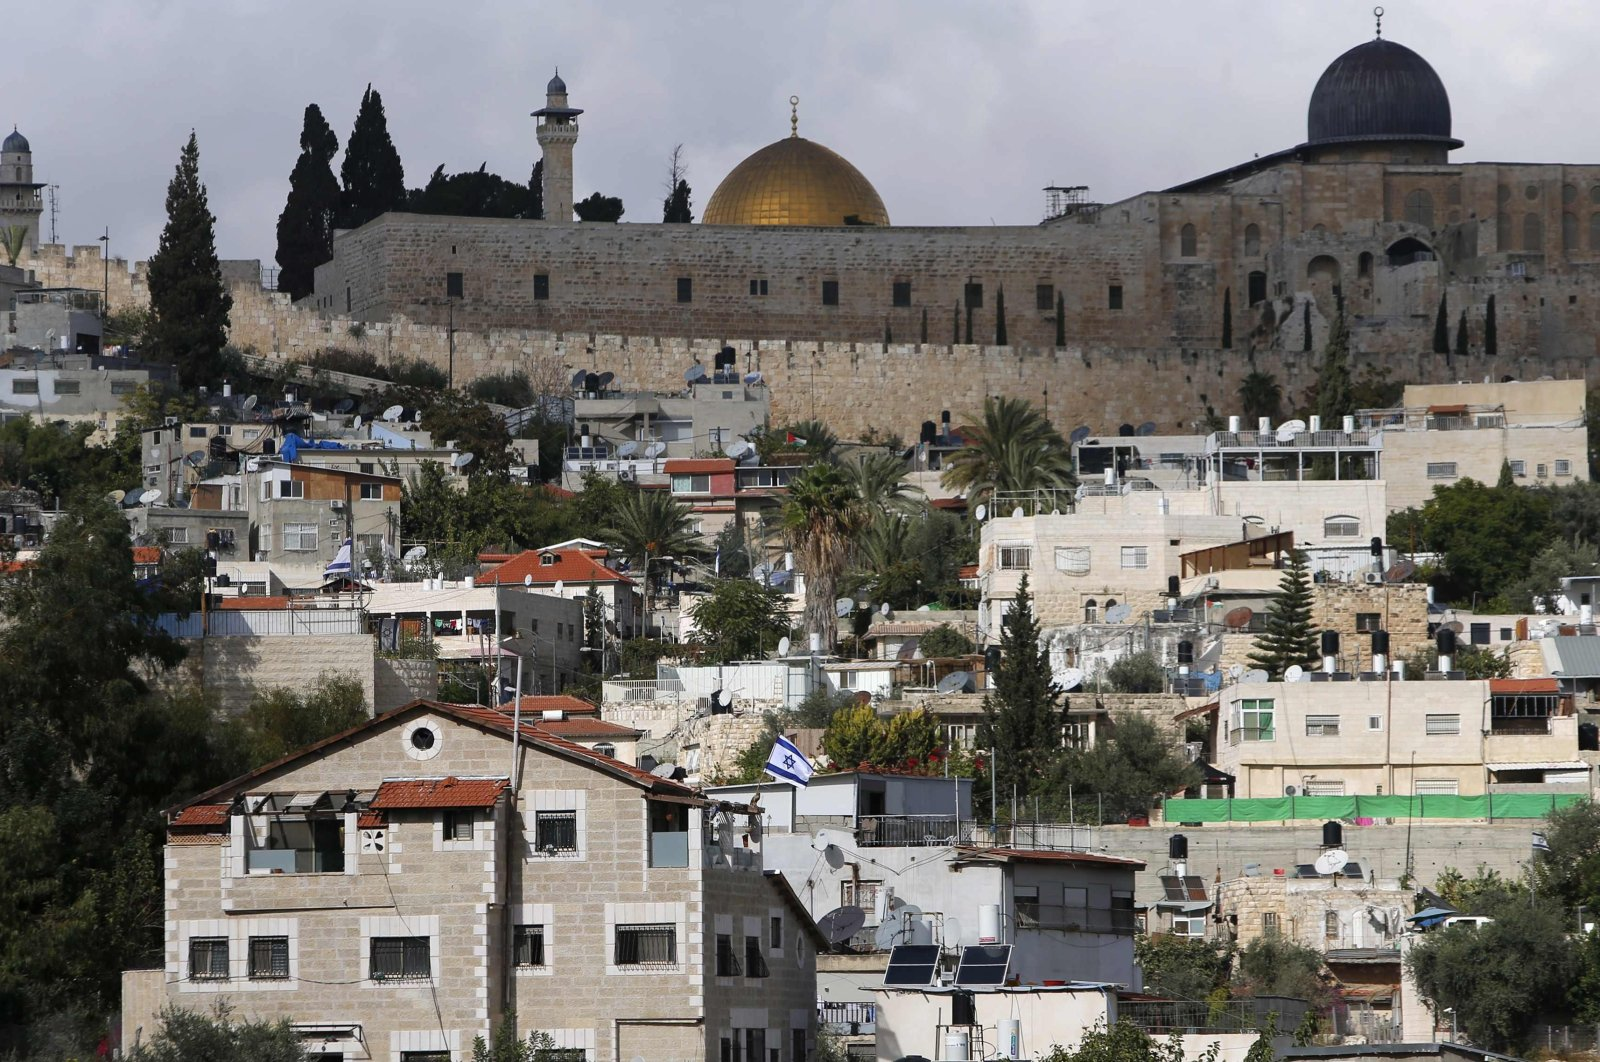 The Dome of the Rock and Al-Aqsa Mosque are seen in background as an Israeli flag flutters from atop a home of Jewish settlers in Silwan, a mostly Palestinian district abutting the Old City, Nov. 3, 2014. (Reuters Photo)